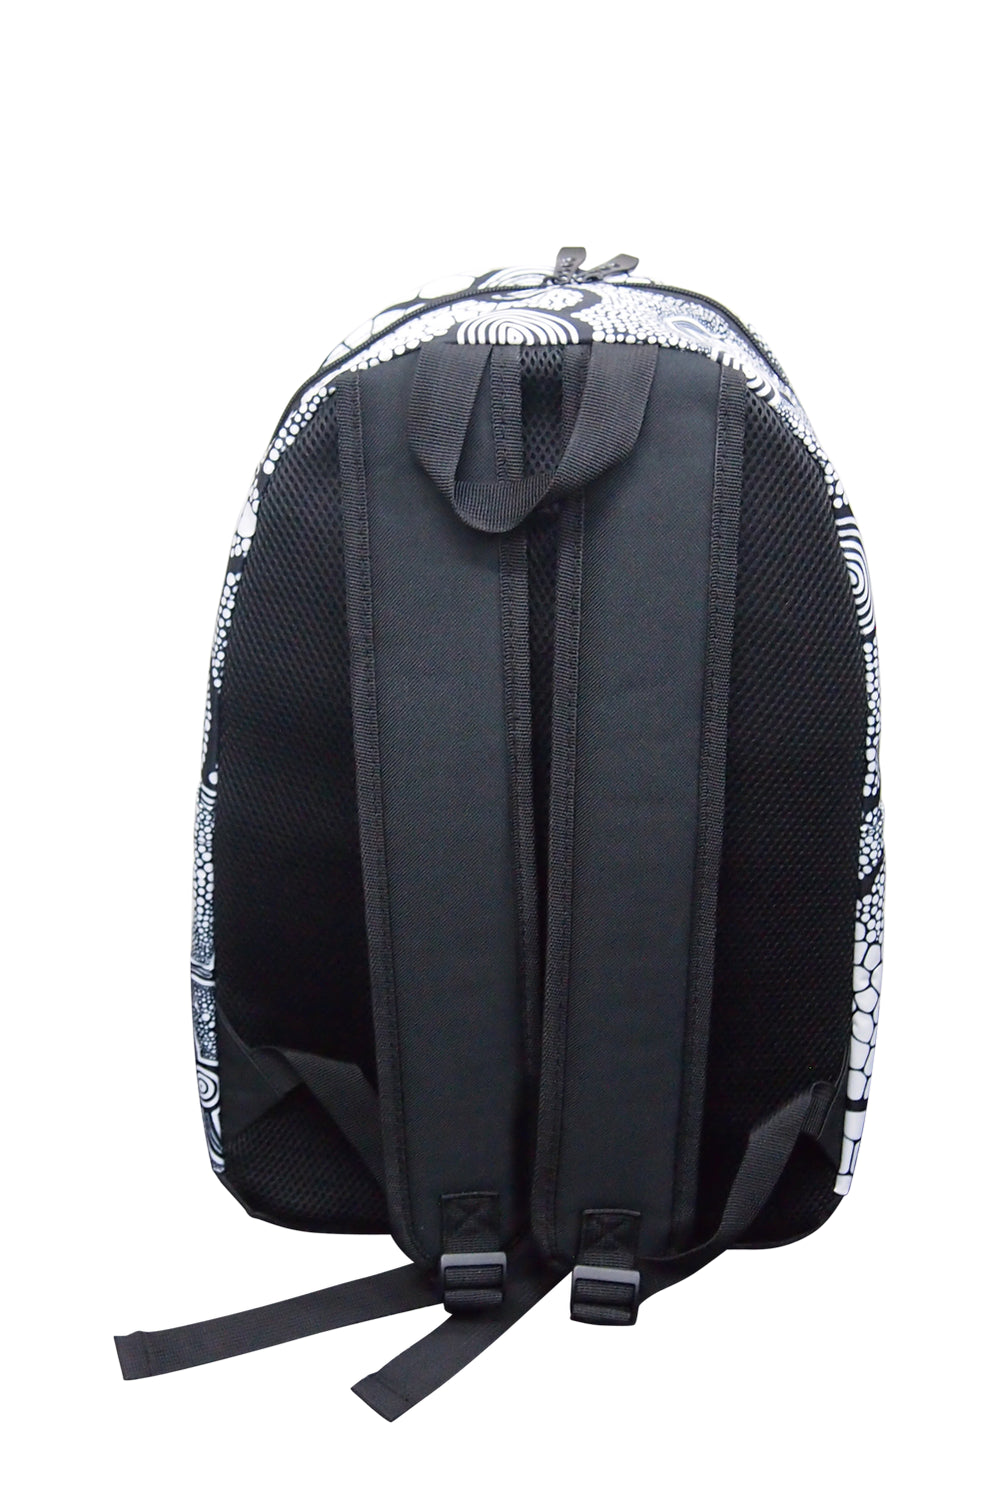 Maaruma-Li (Heal) Backpacks